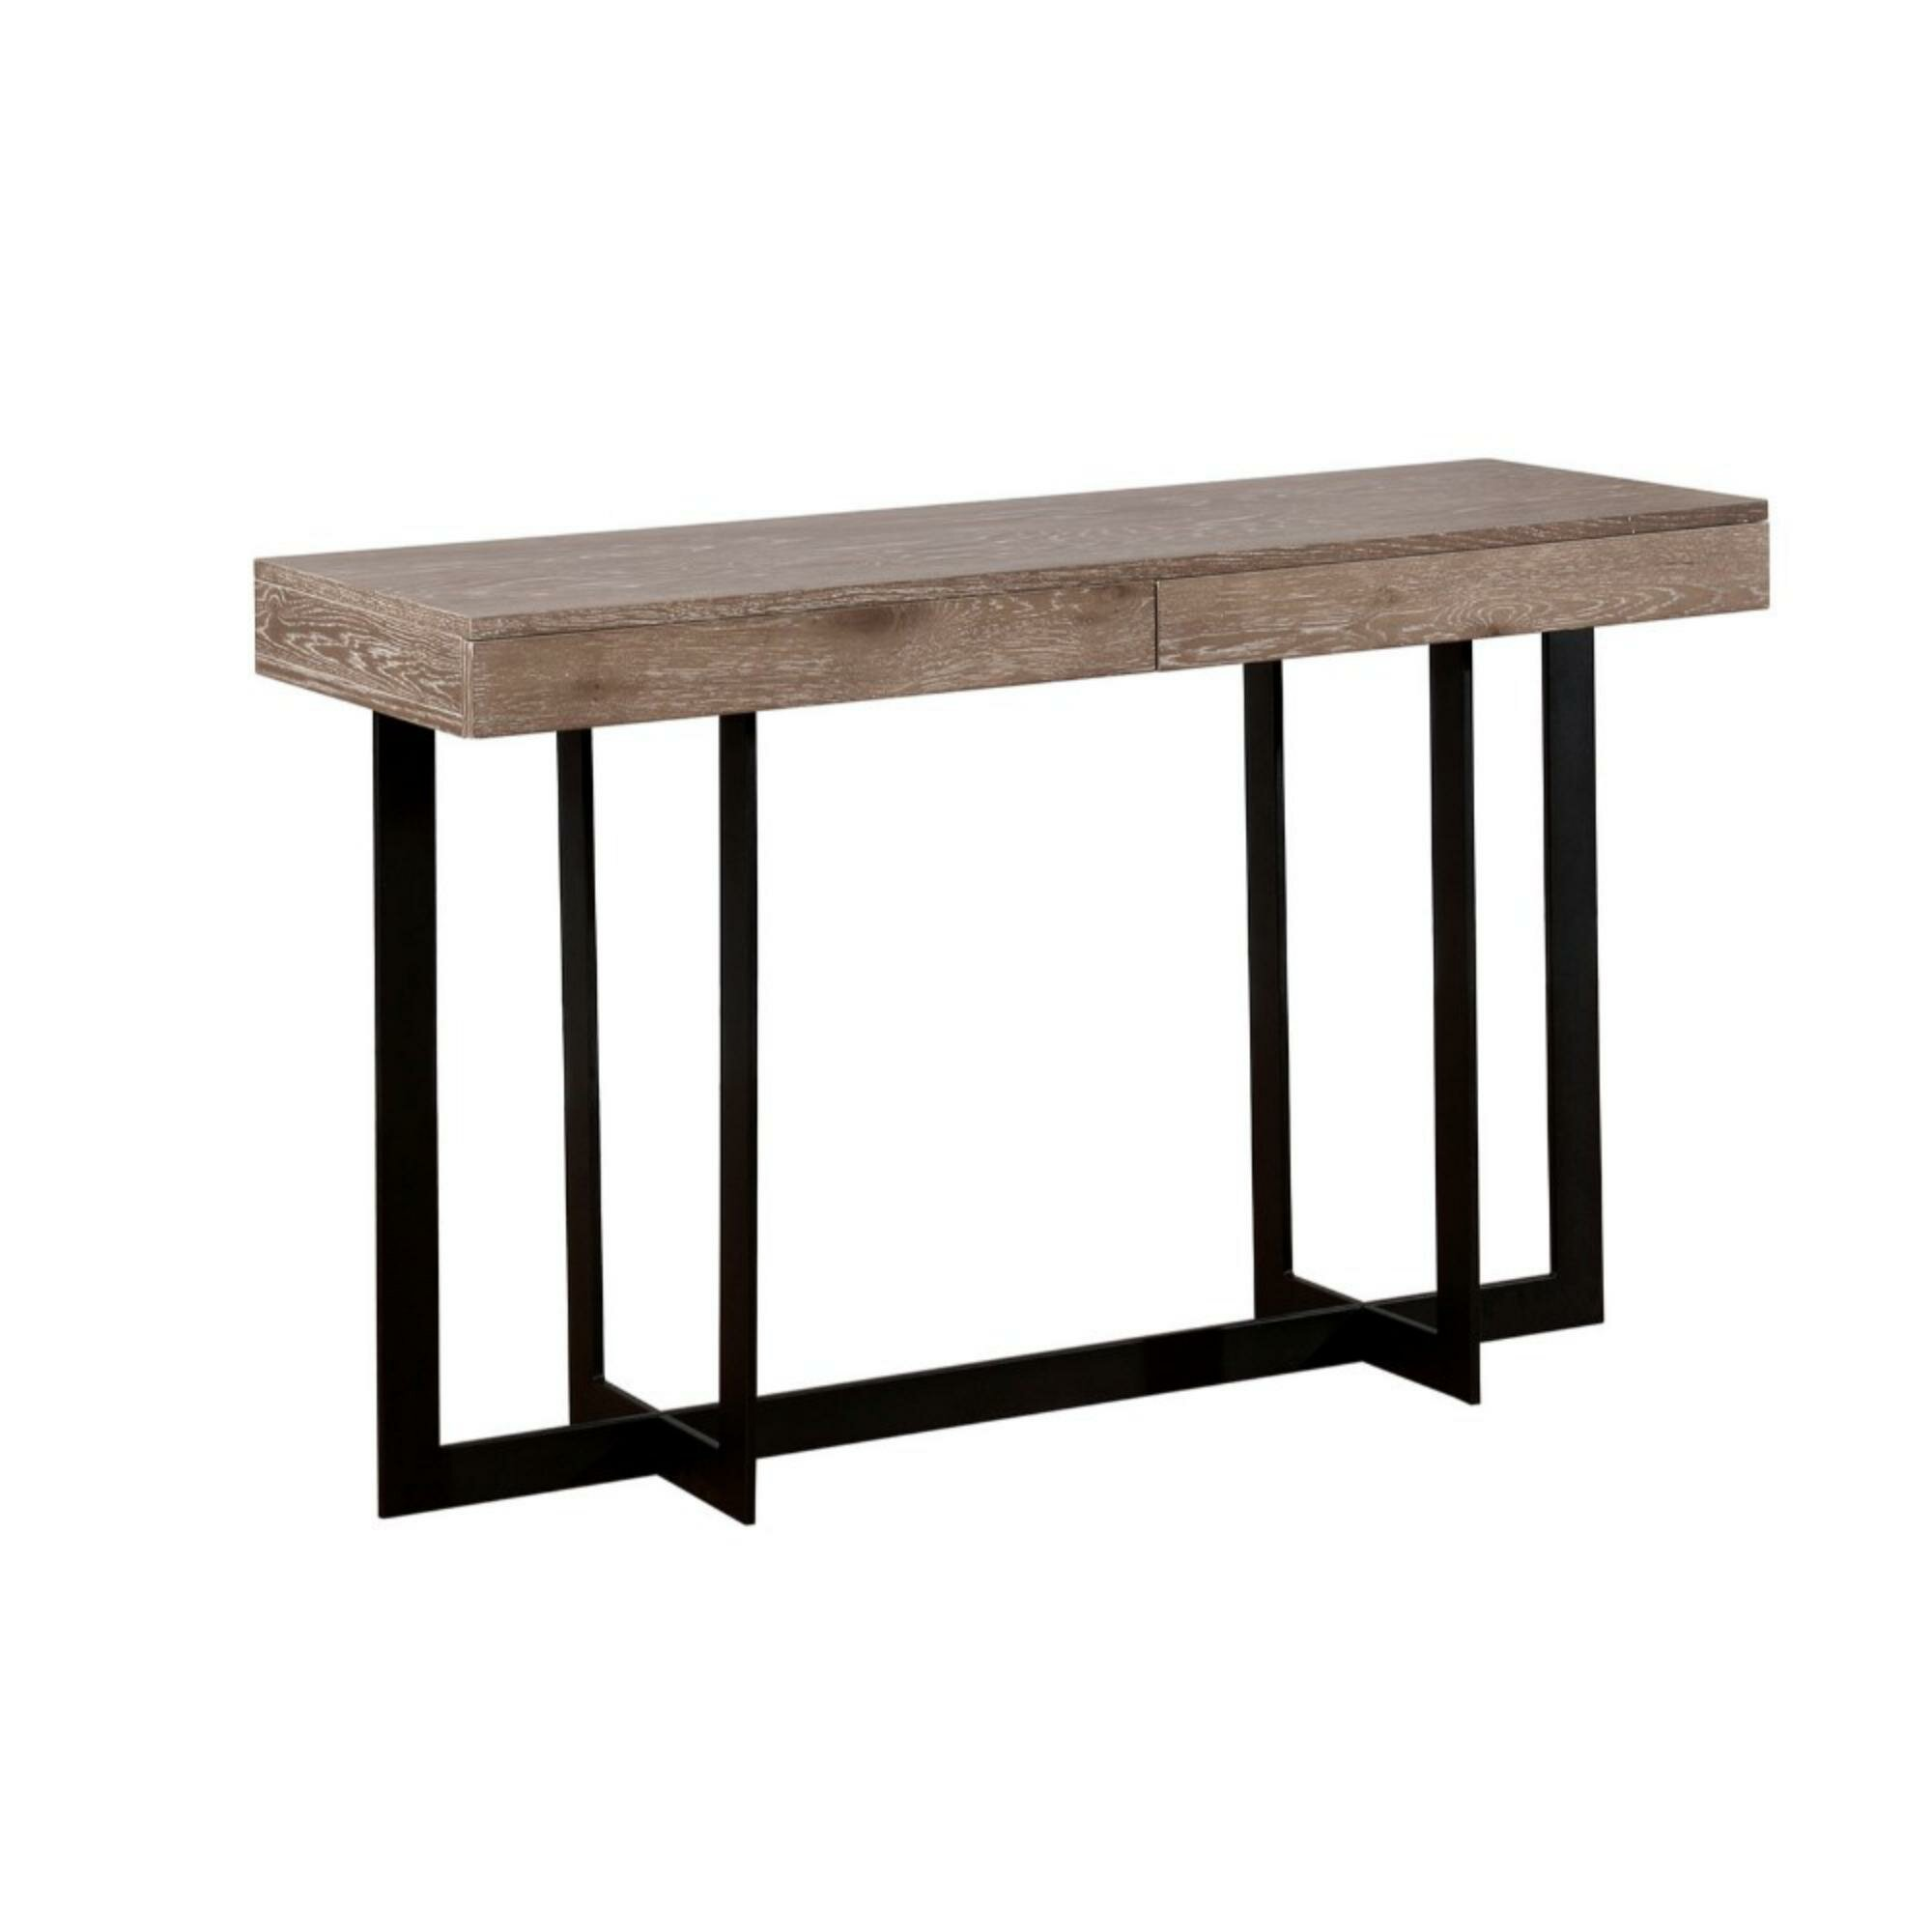 hot sale online f1b21 a25f9 Gunnar Industrial Solid Wood Console Table